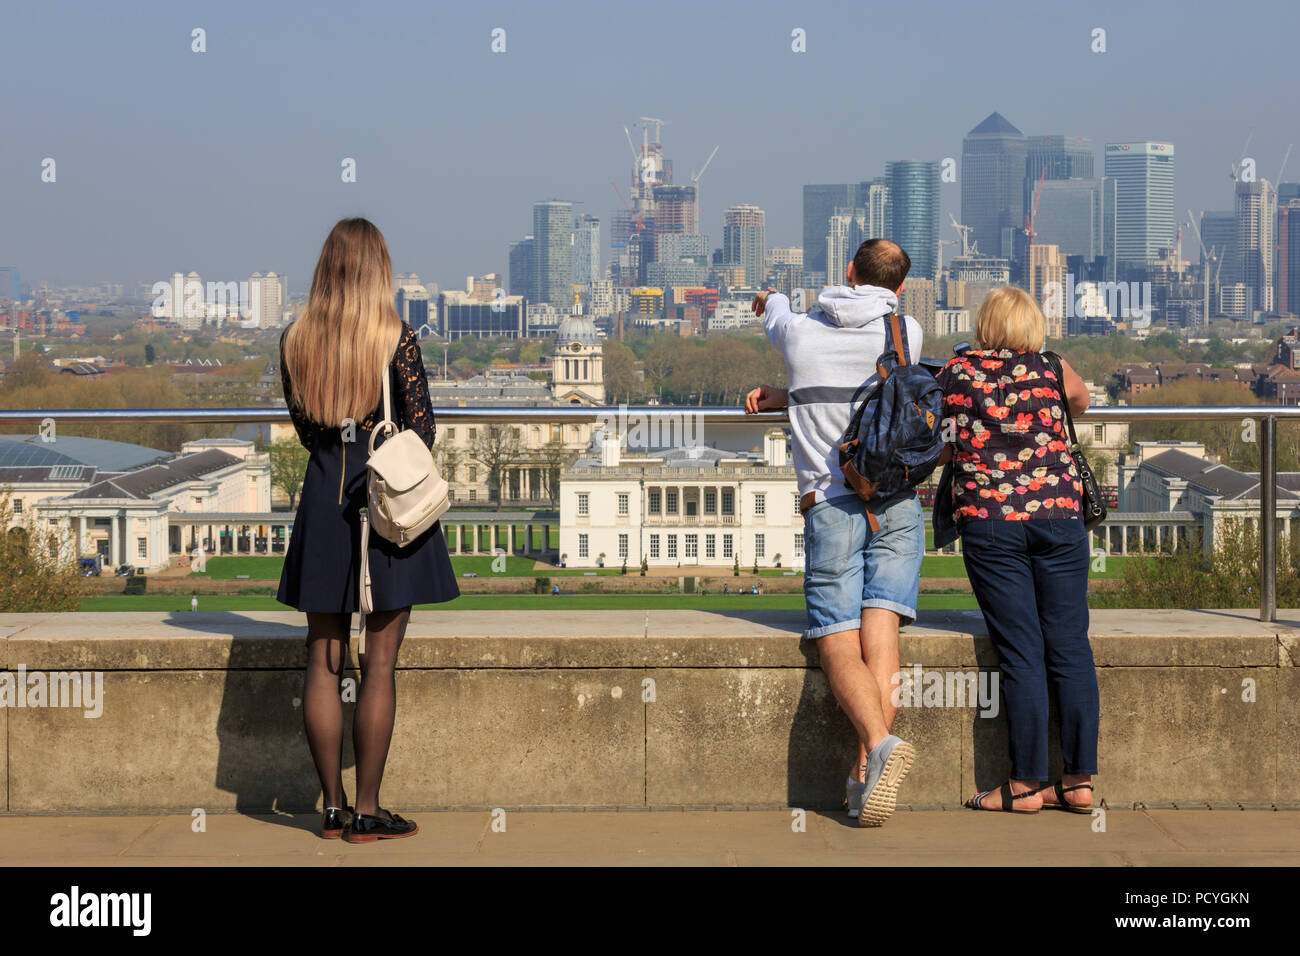 People look over towards the Docklands cityscape from the viewpoint, adjacent to the Royal Observatory, in Greenwich Park, on a bright sunny day - Stock Image